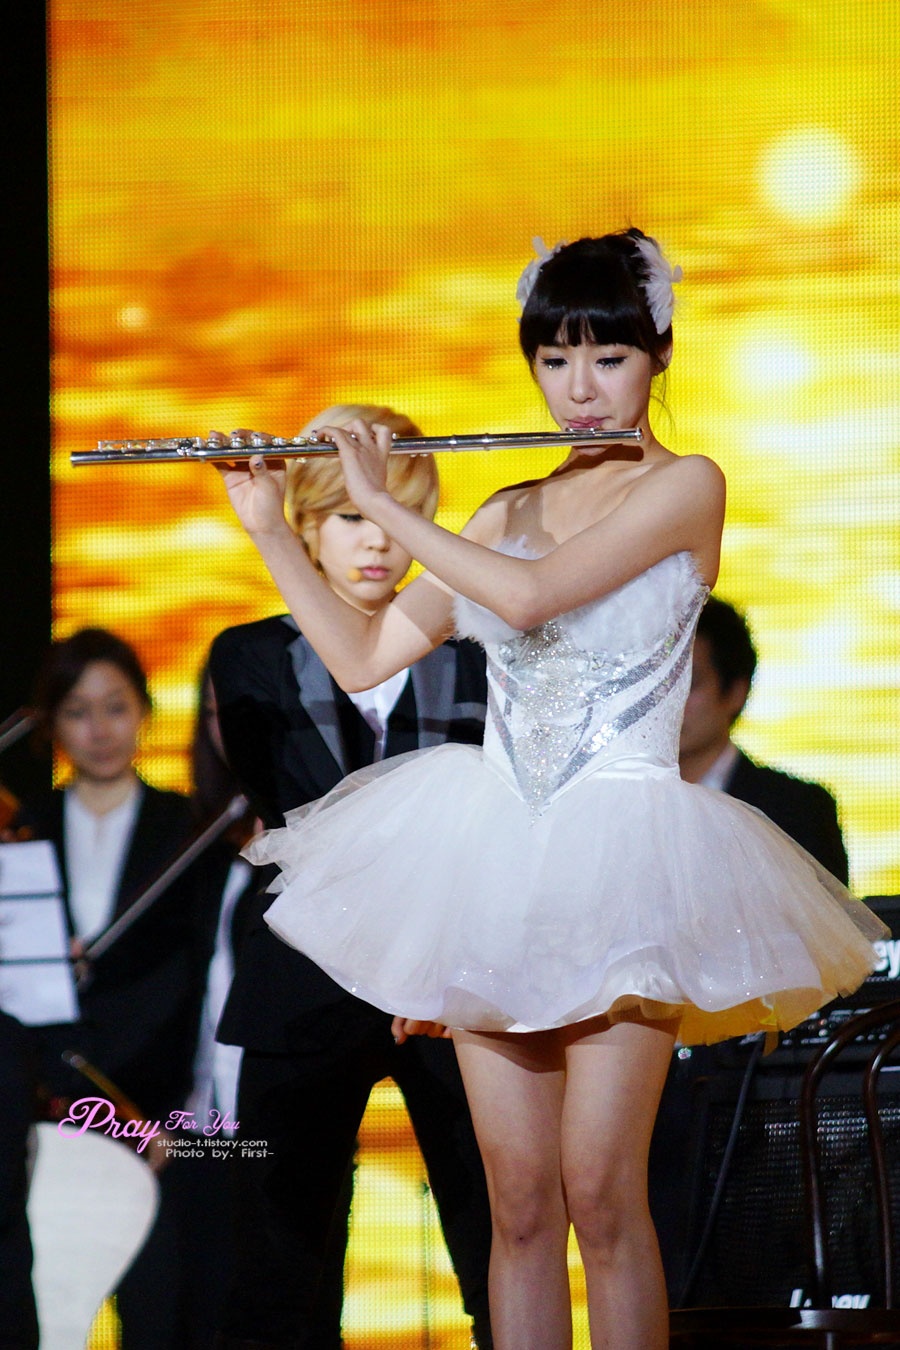 Tiffany plays the flute